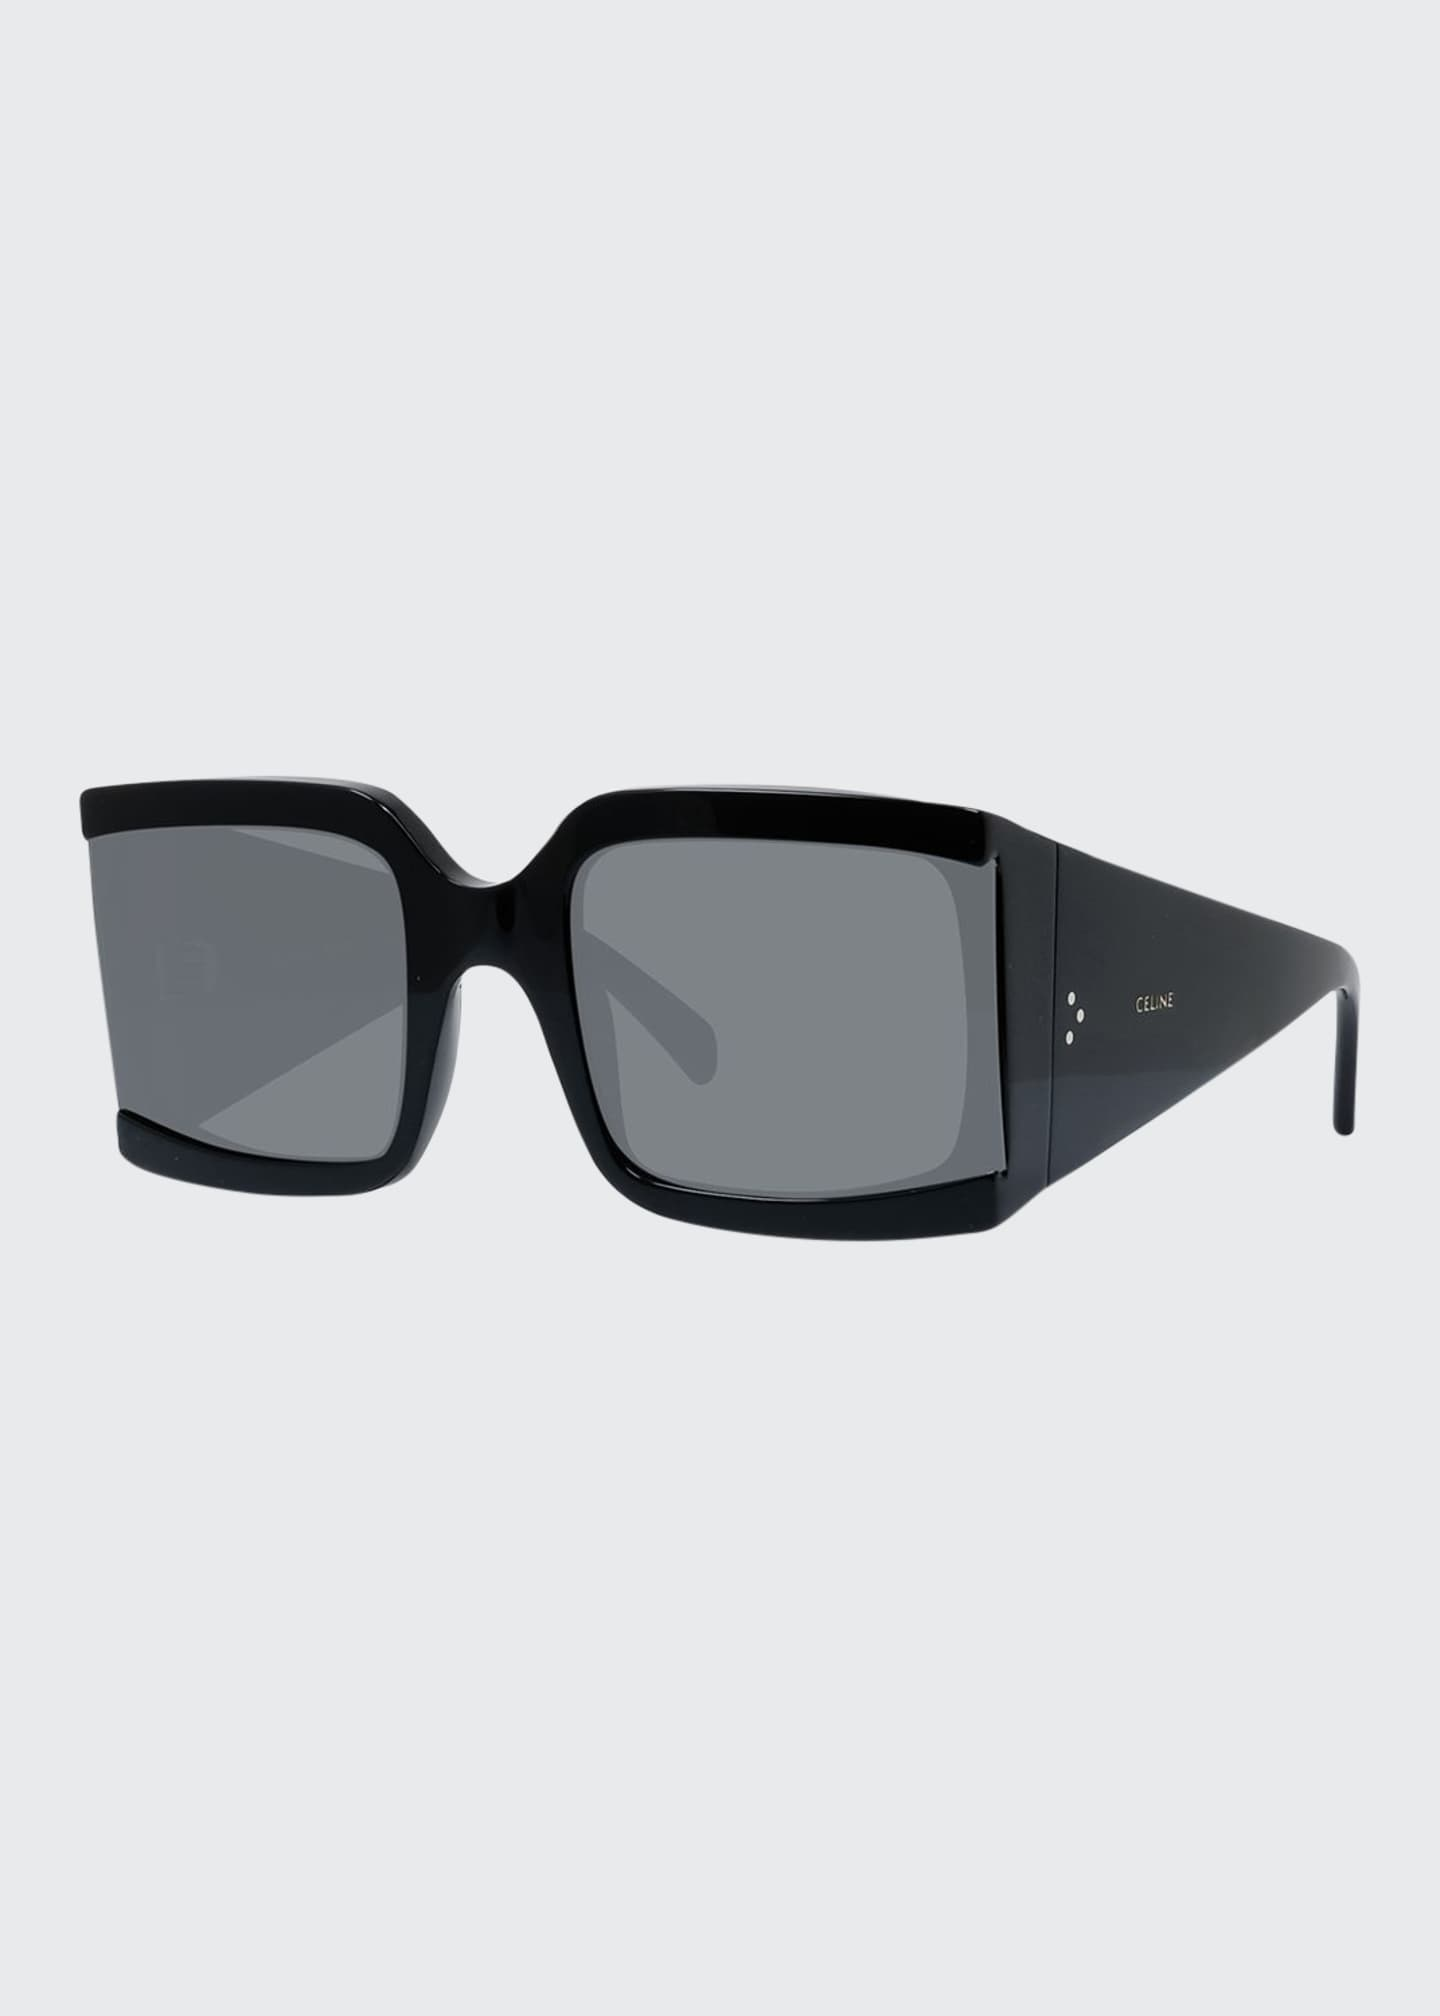 Celine Square Shield Acetate Sunglasses